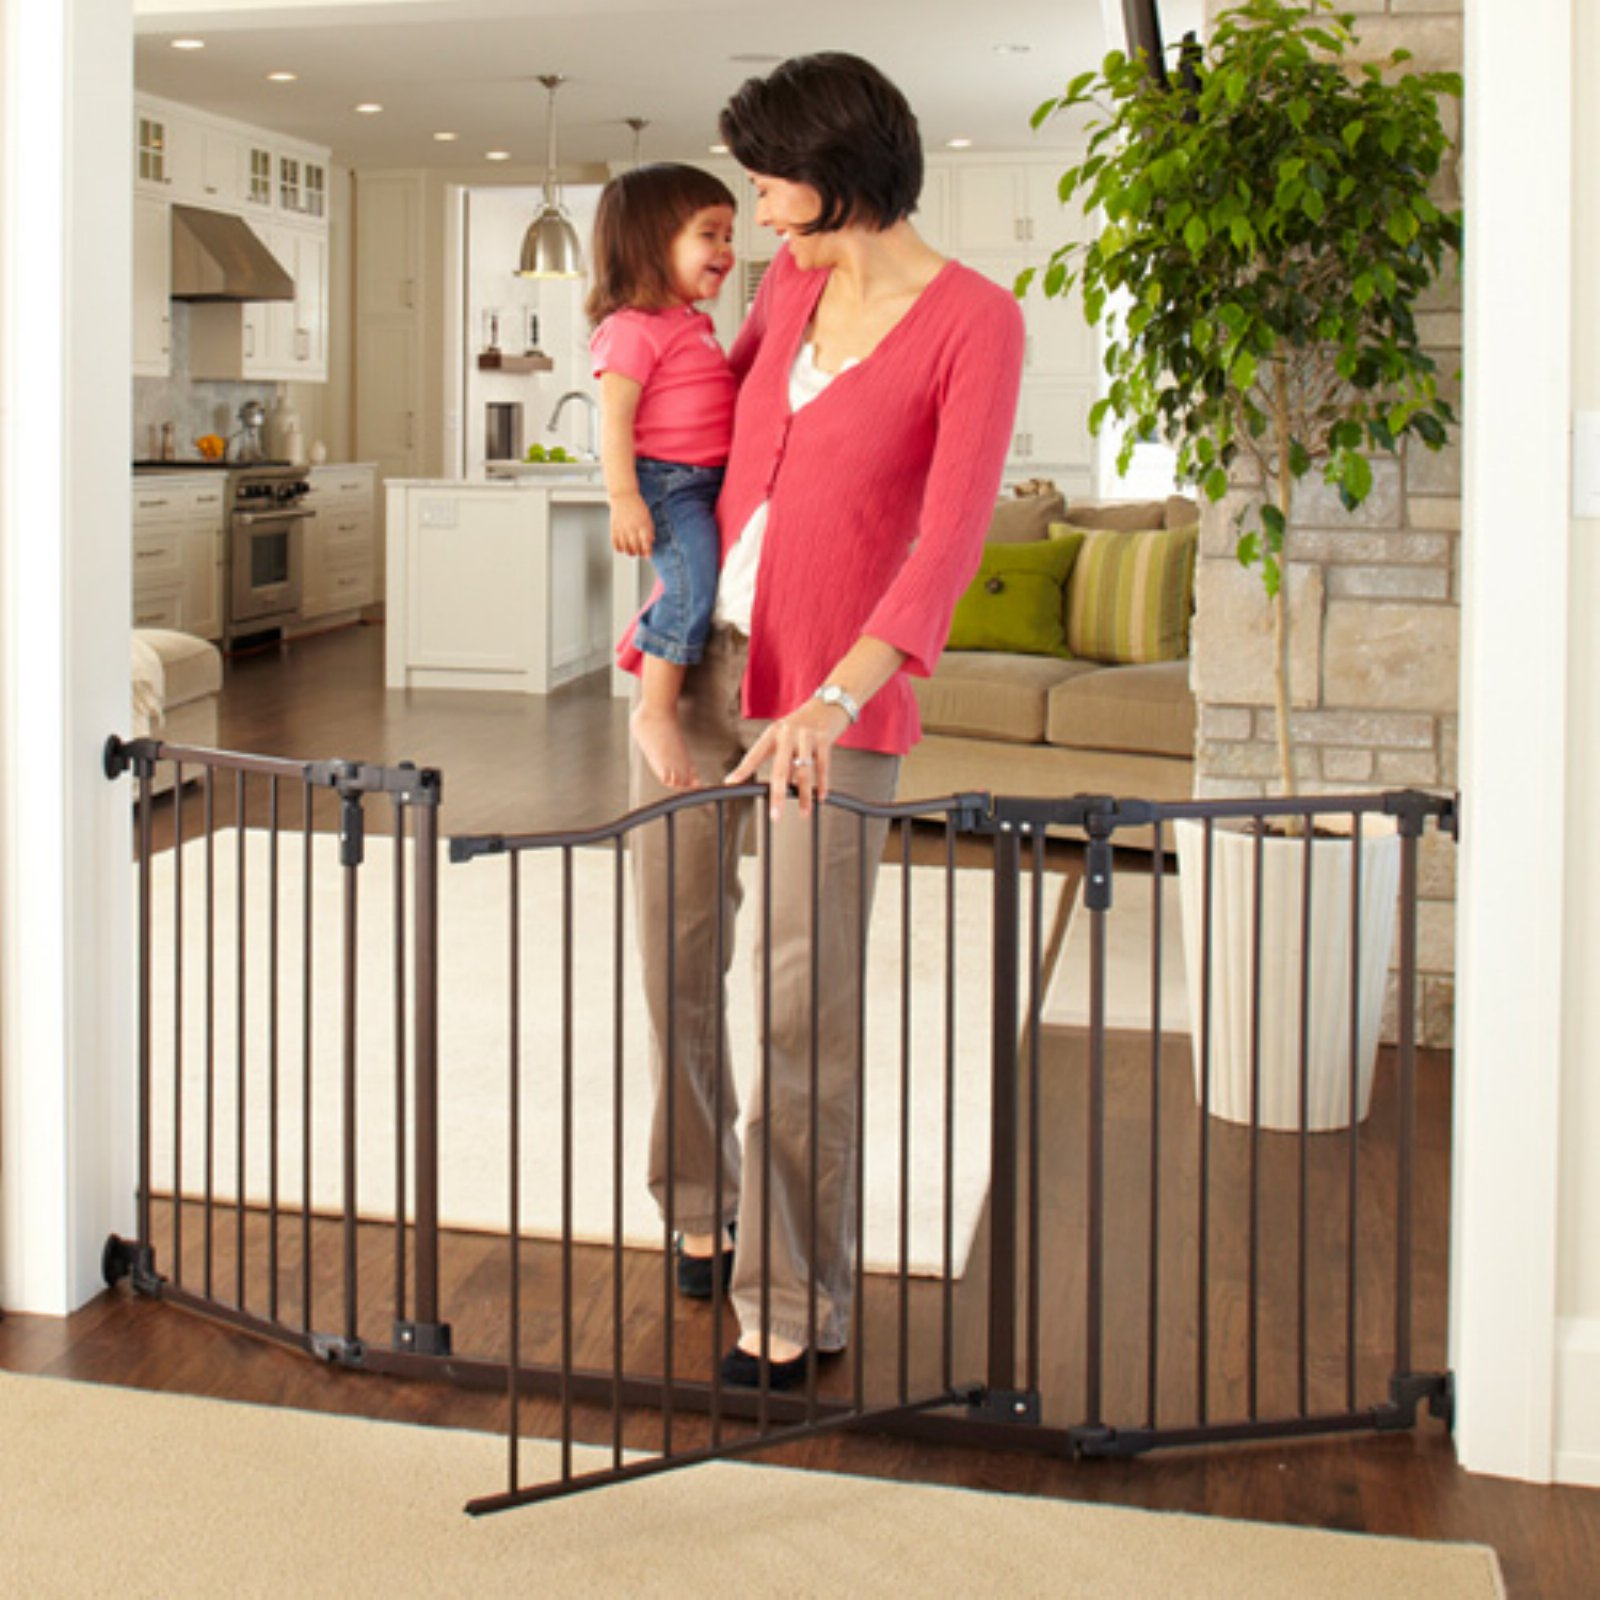 North States Deluxe Decor Metal Gate Best baby gates